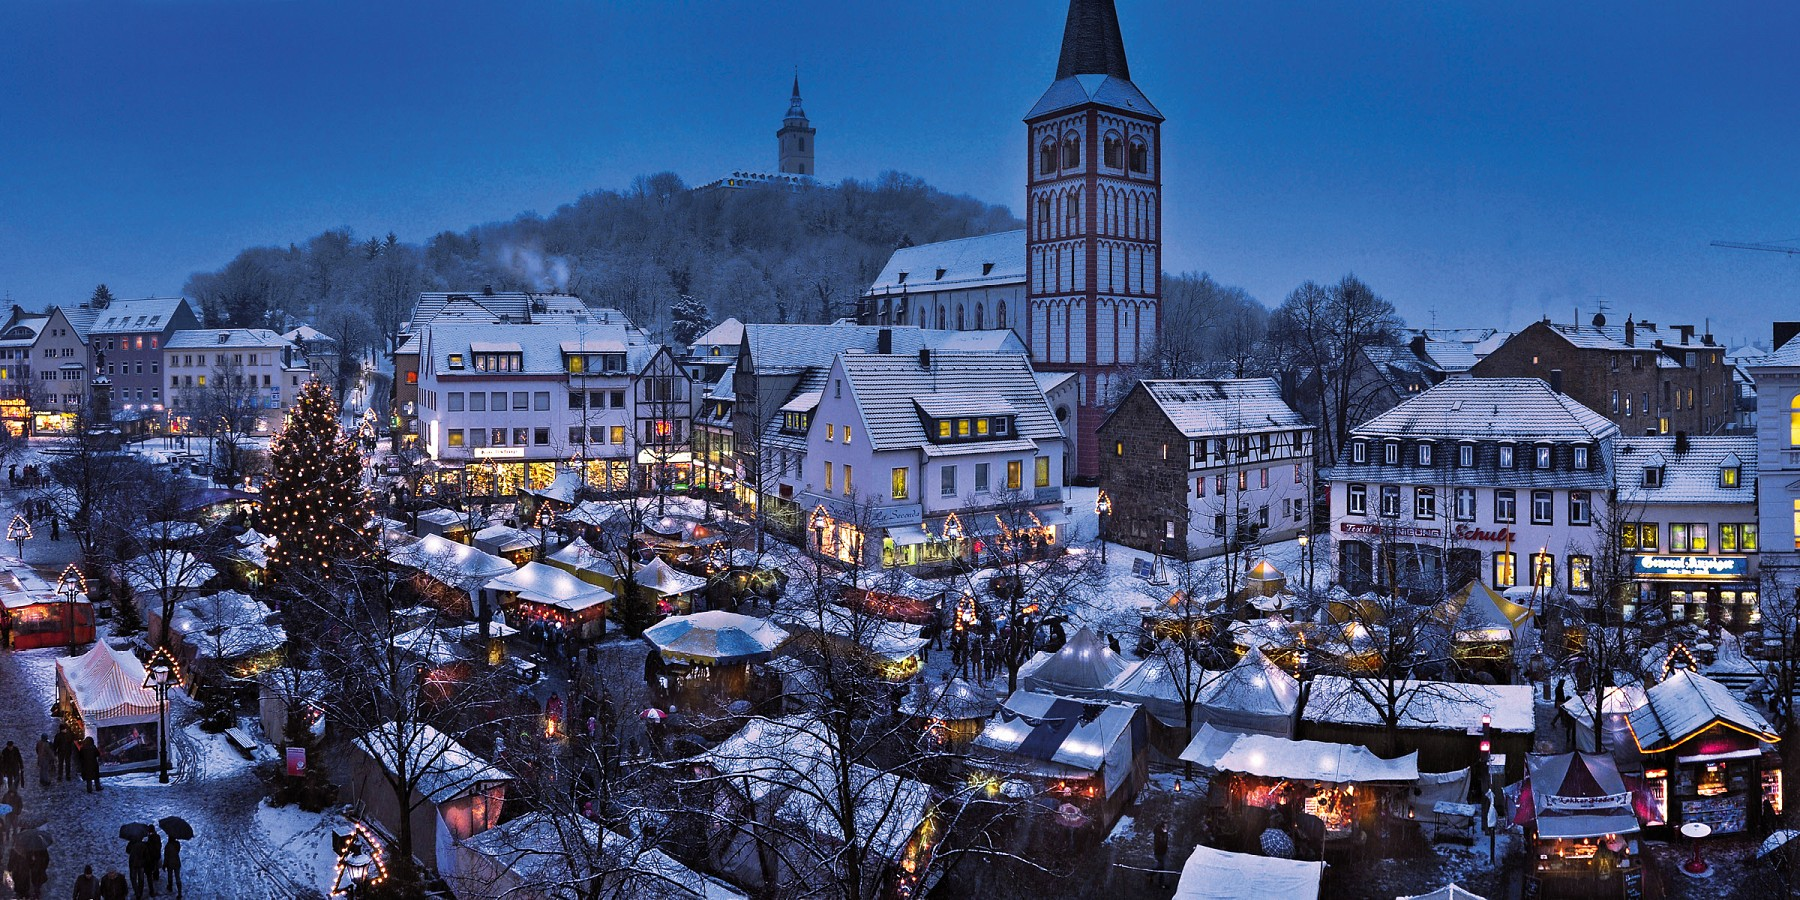 Christmas magic in medieval Siegburg